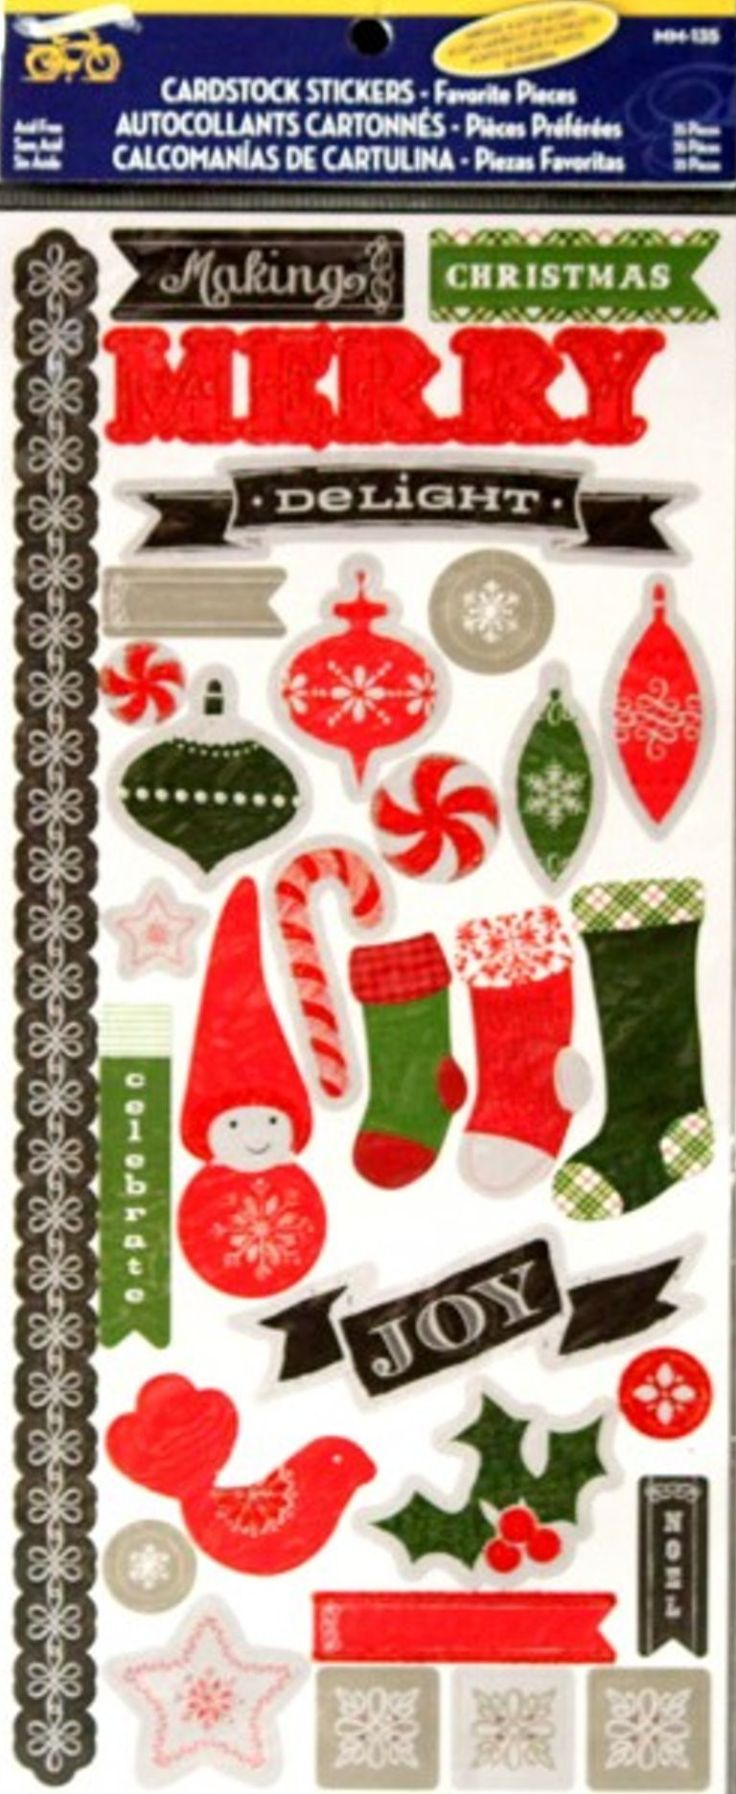 Little Yellow Bicycle Embossed Christmas Glitter Cardstock Stickers